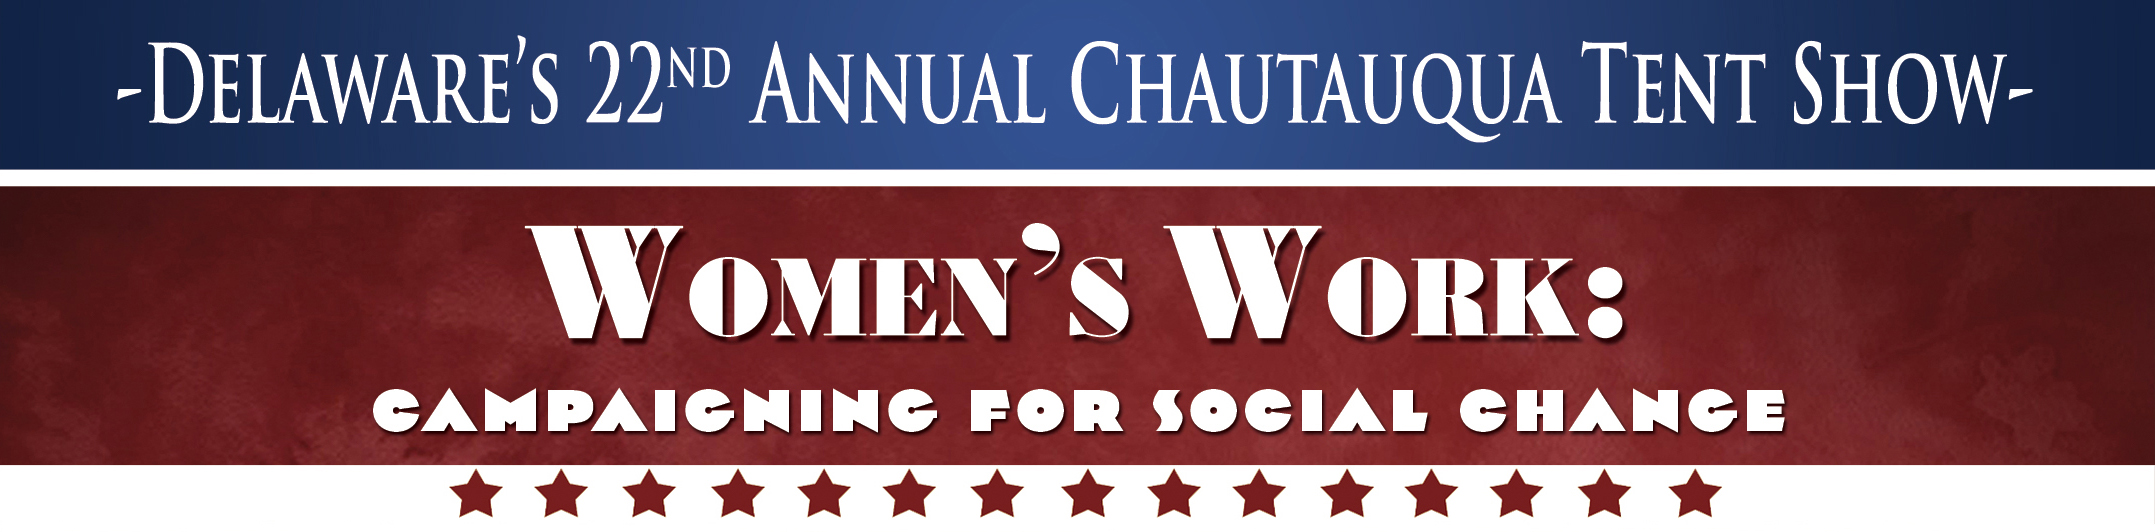 Delaware's 22nd Annual Chautauqua - Women's Work: Campaigning for Social Change Banner